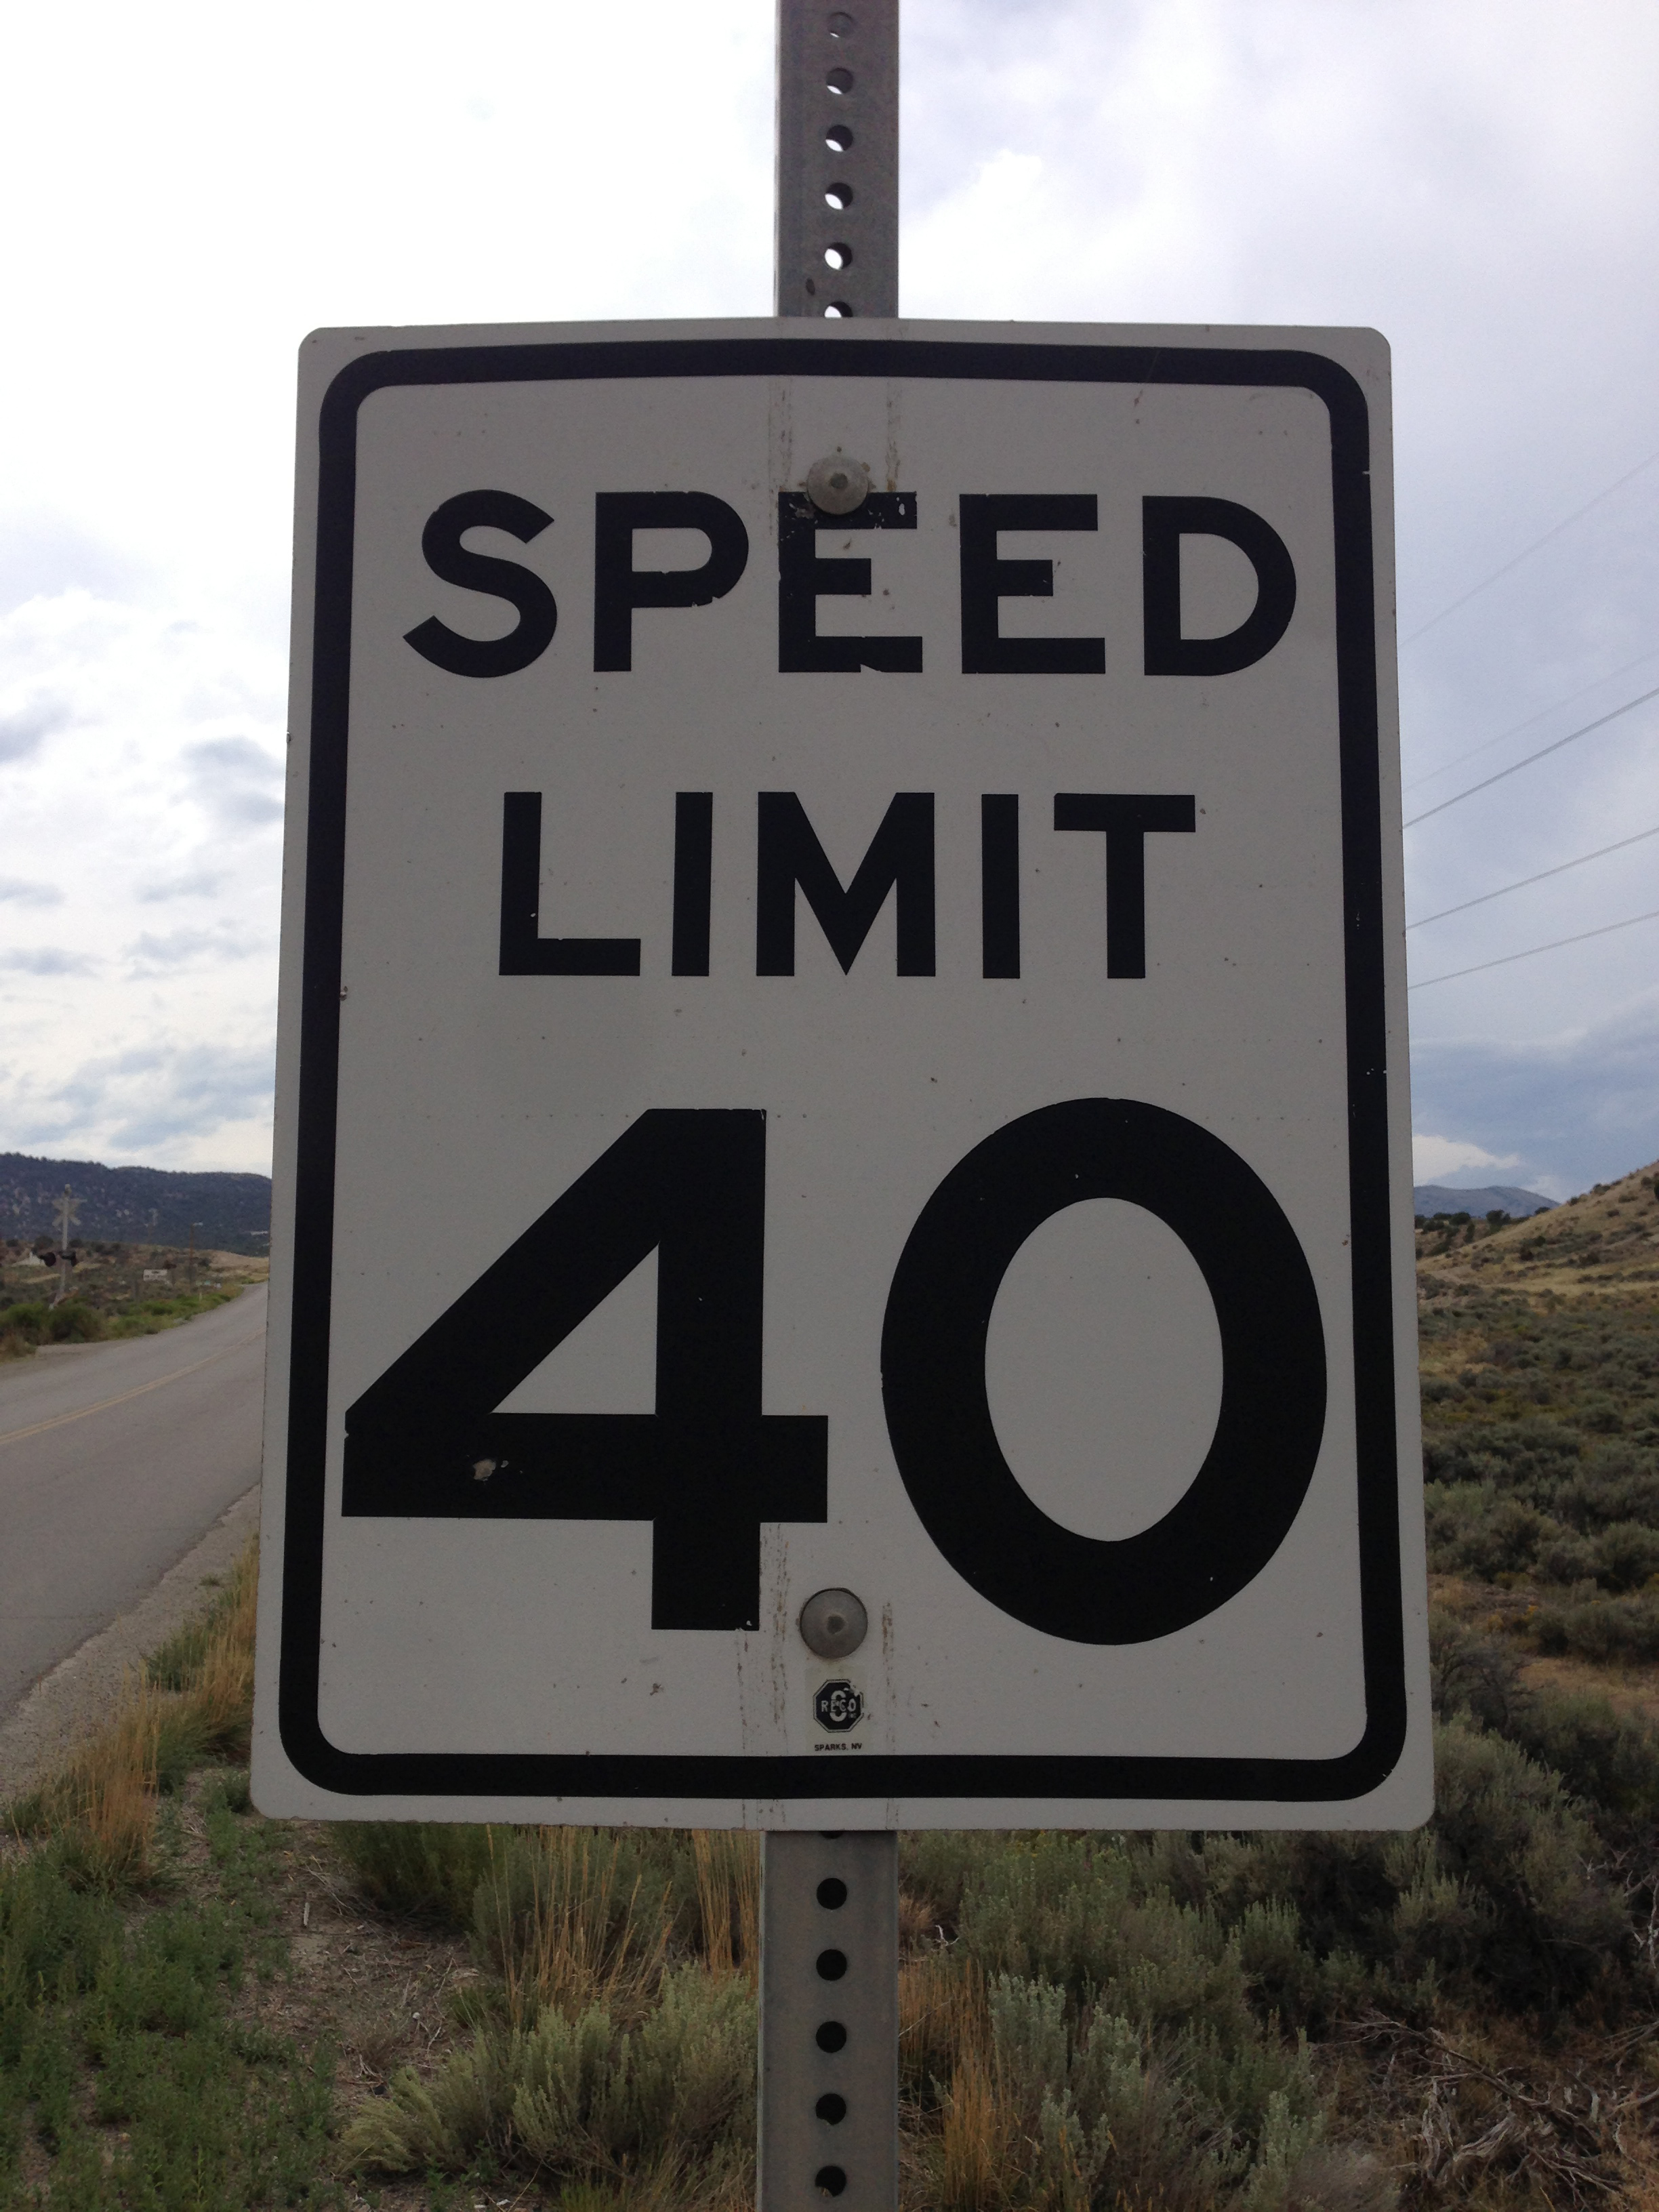 File:2014-08-11 15 11 28 A 40 miles per hour speed limit sign on ...